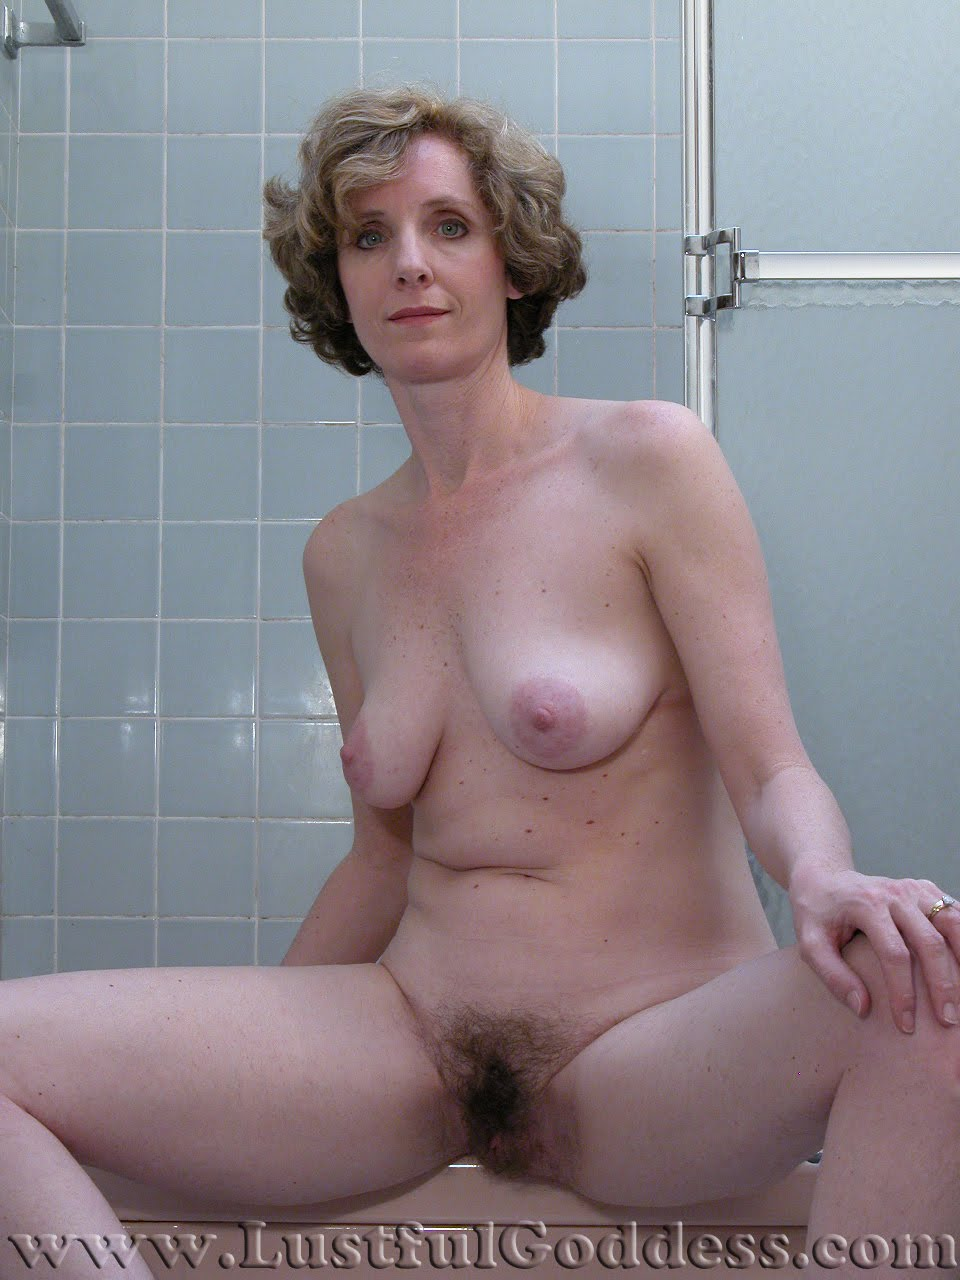 Milfs like it big pictures